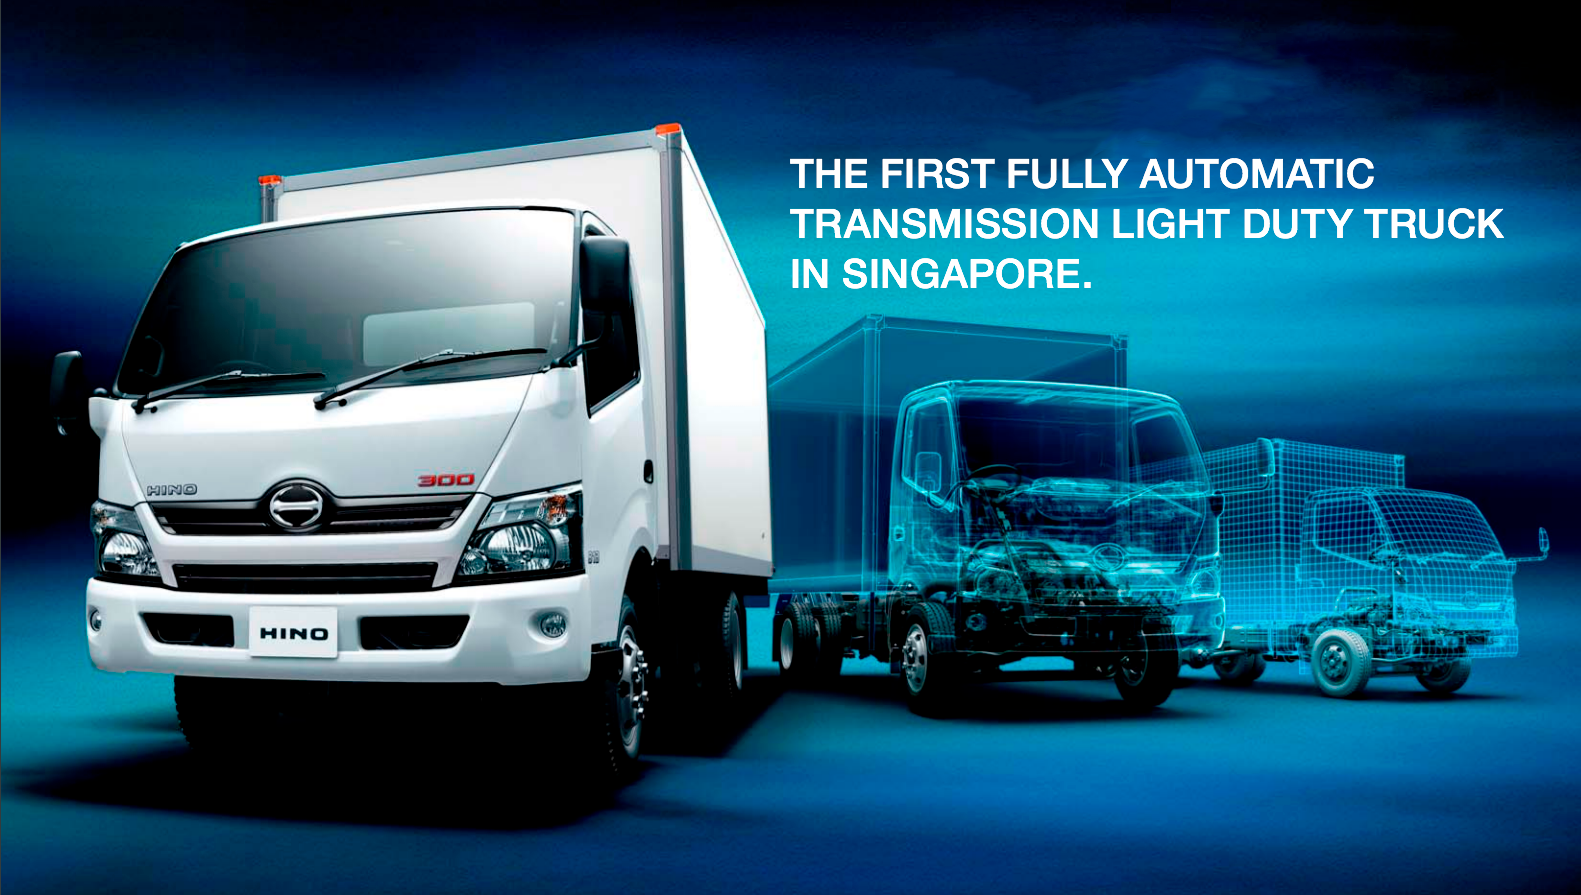 Hino 300 Fully Automatic Transmission